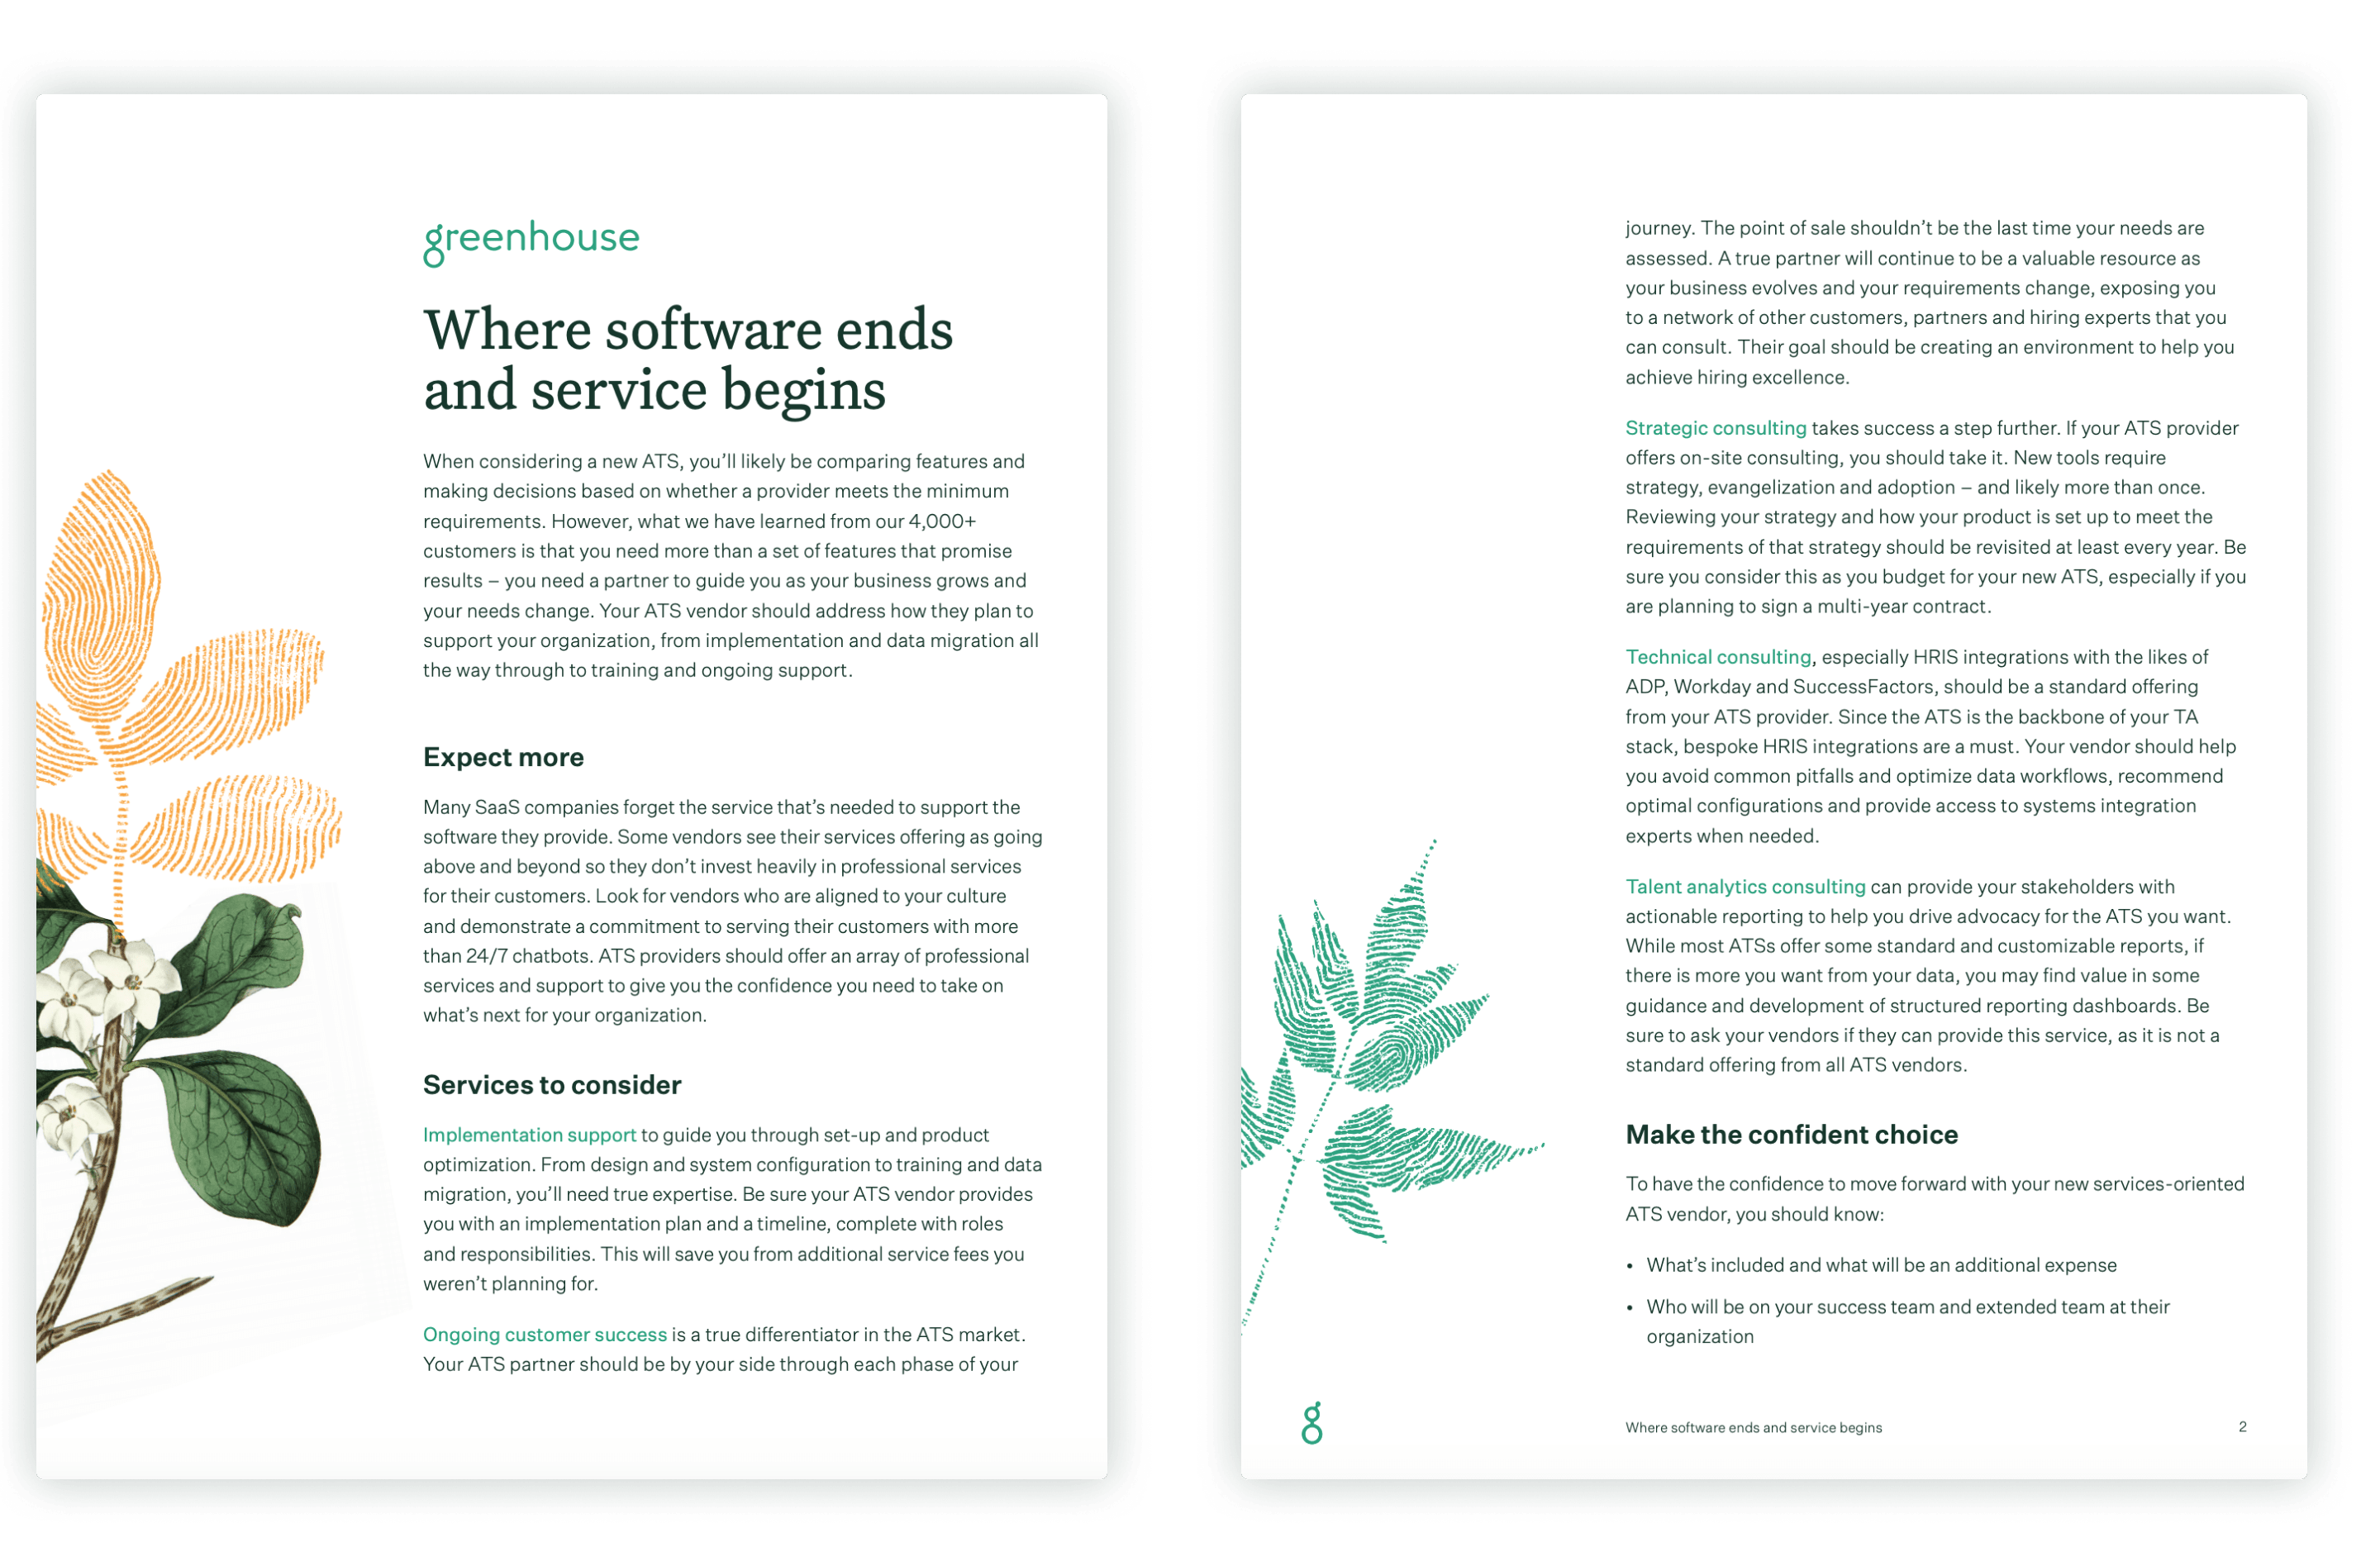 Sample pages of the Greenhouse professional services guide